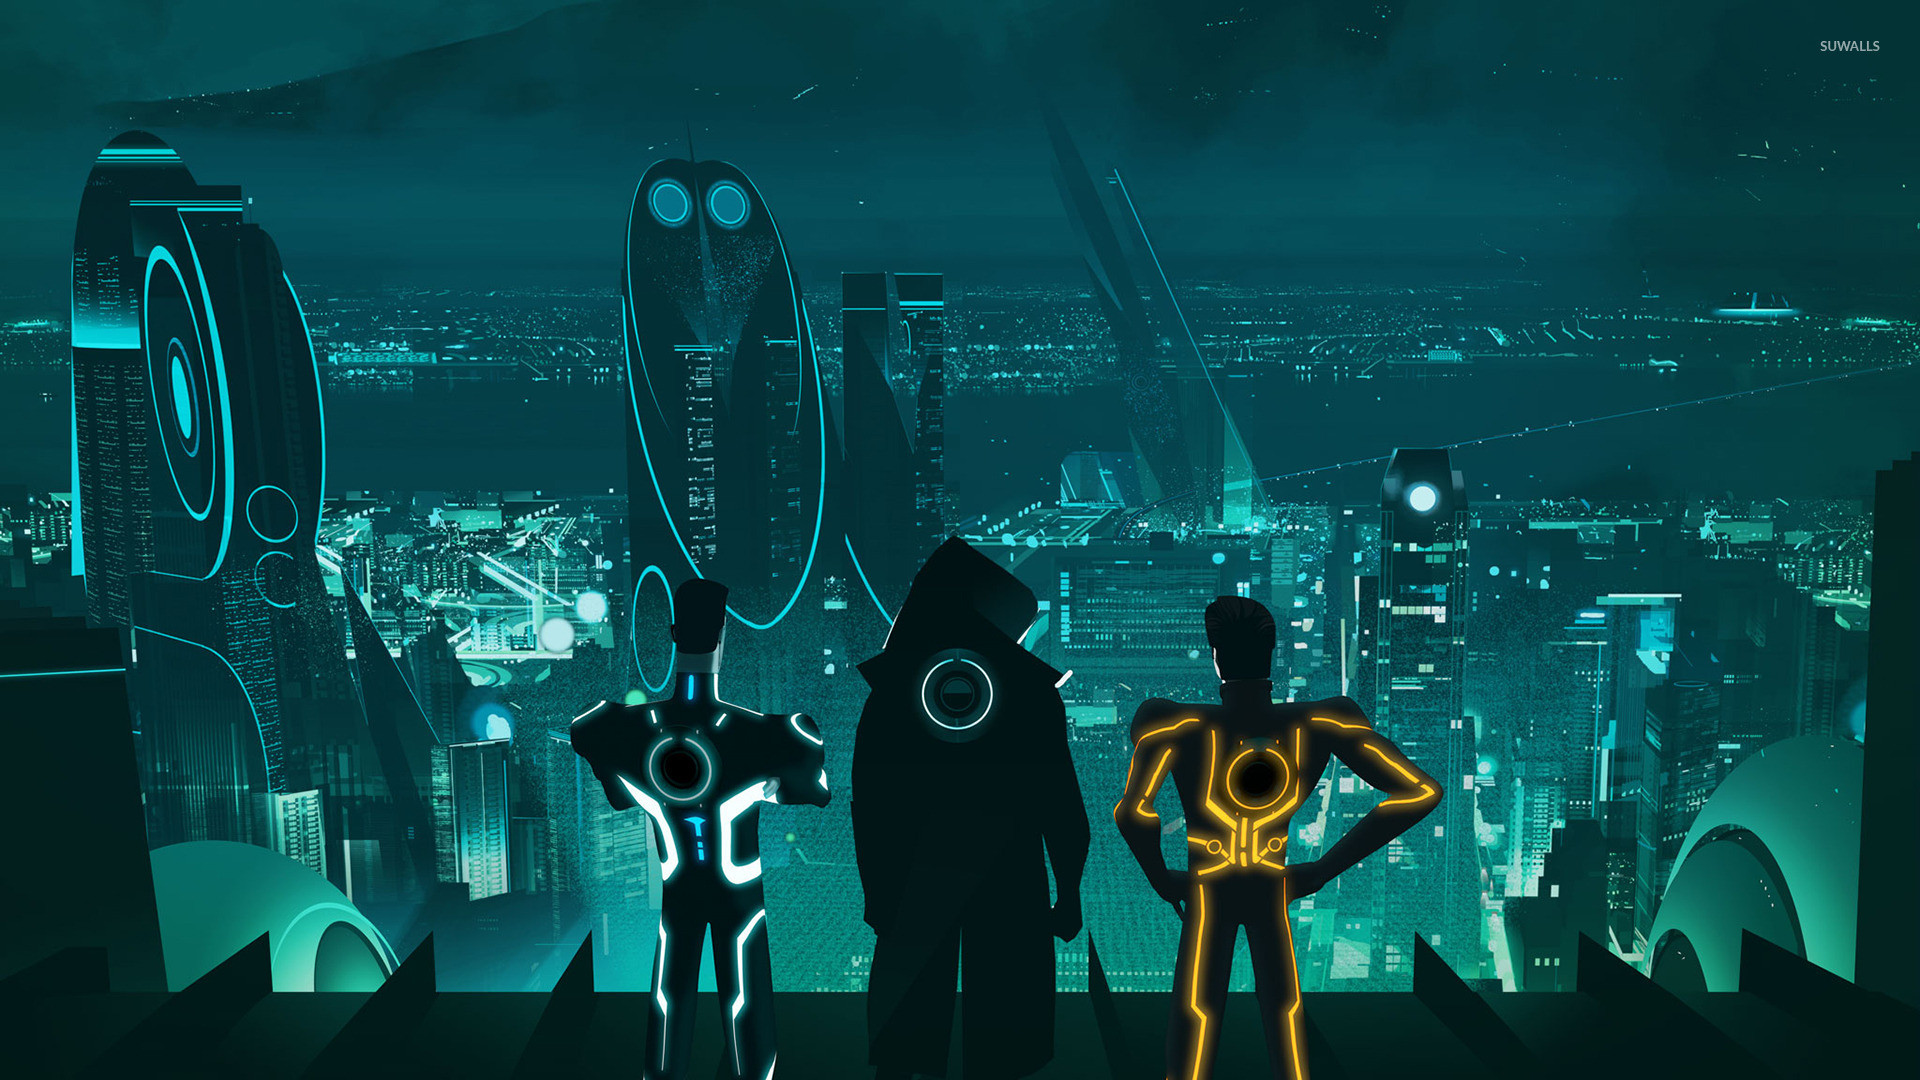 1920x1080 Tron: Uprising wallpaper  jpg